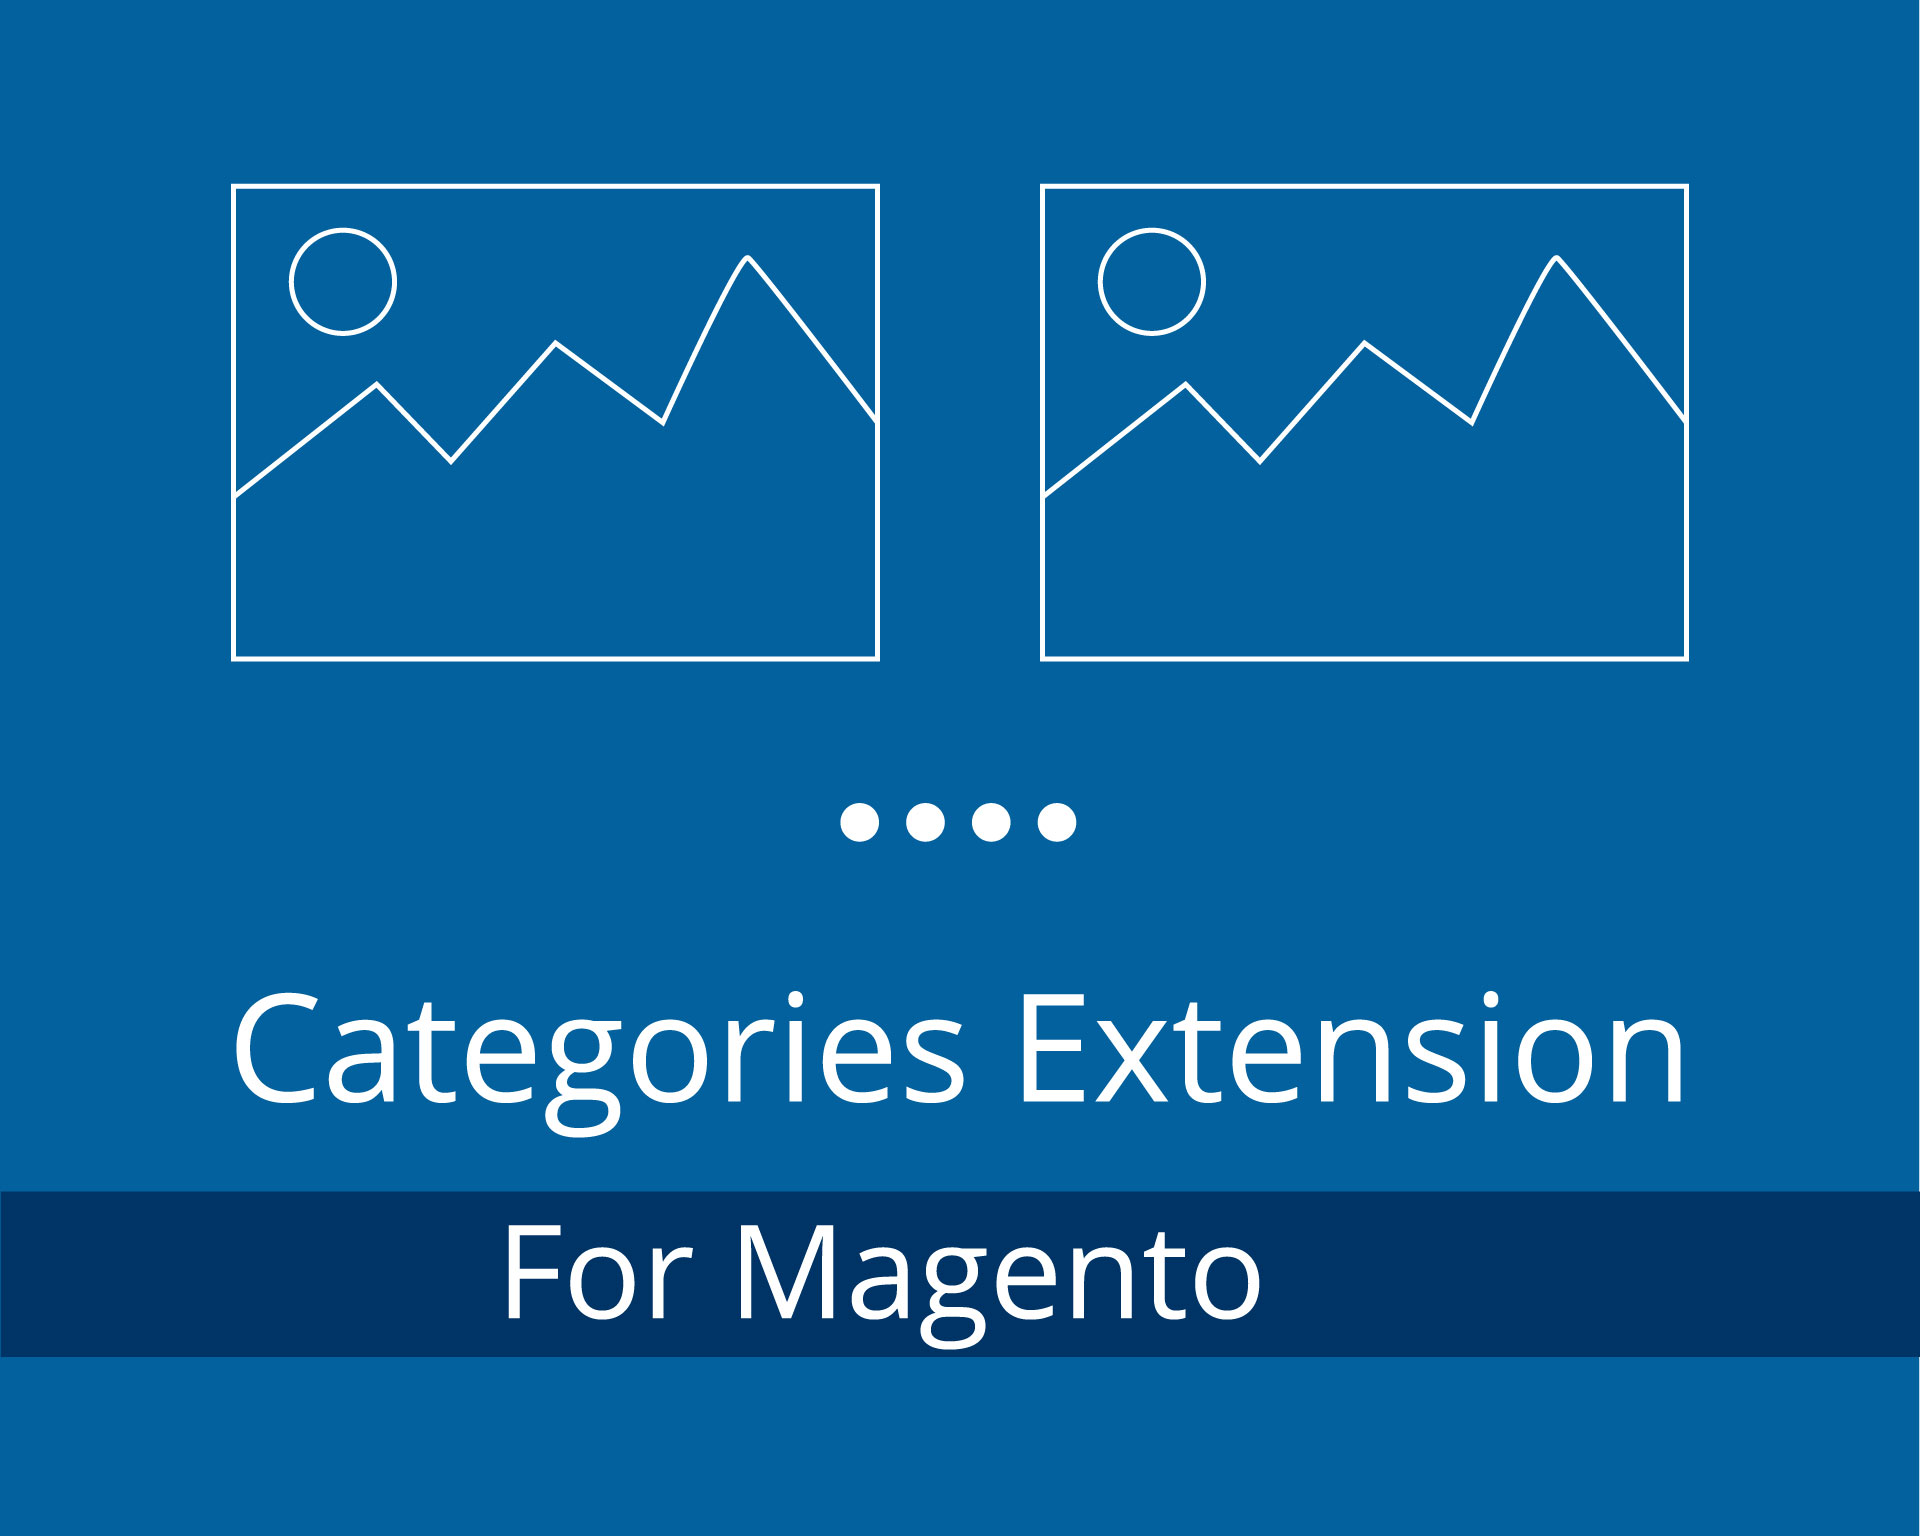 Category Extension For Magento